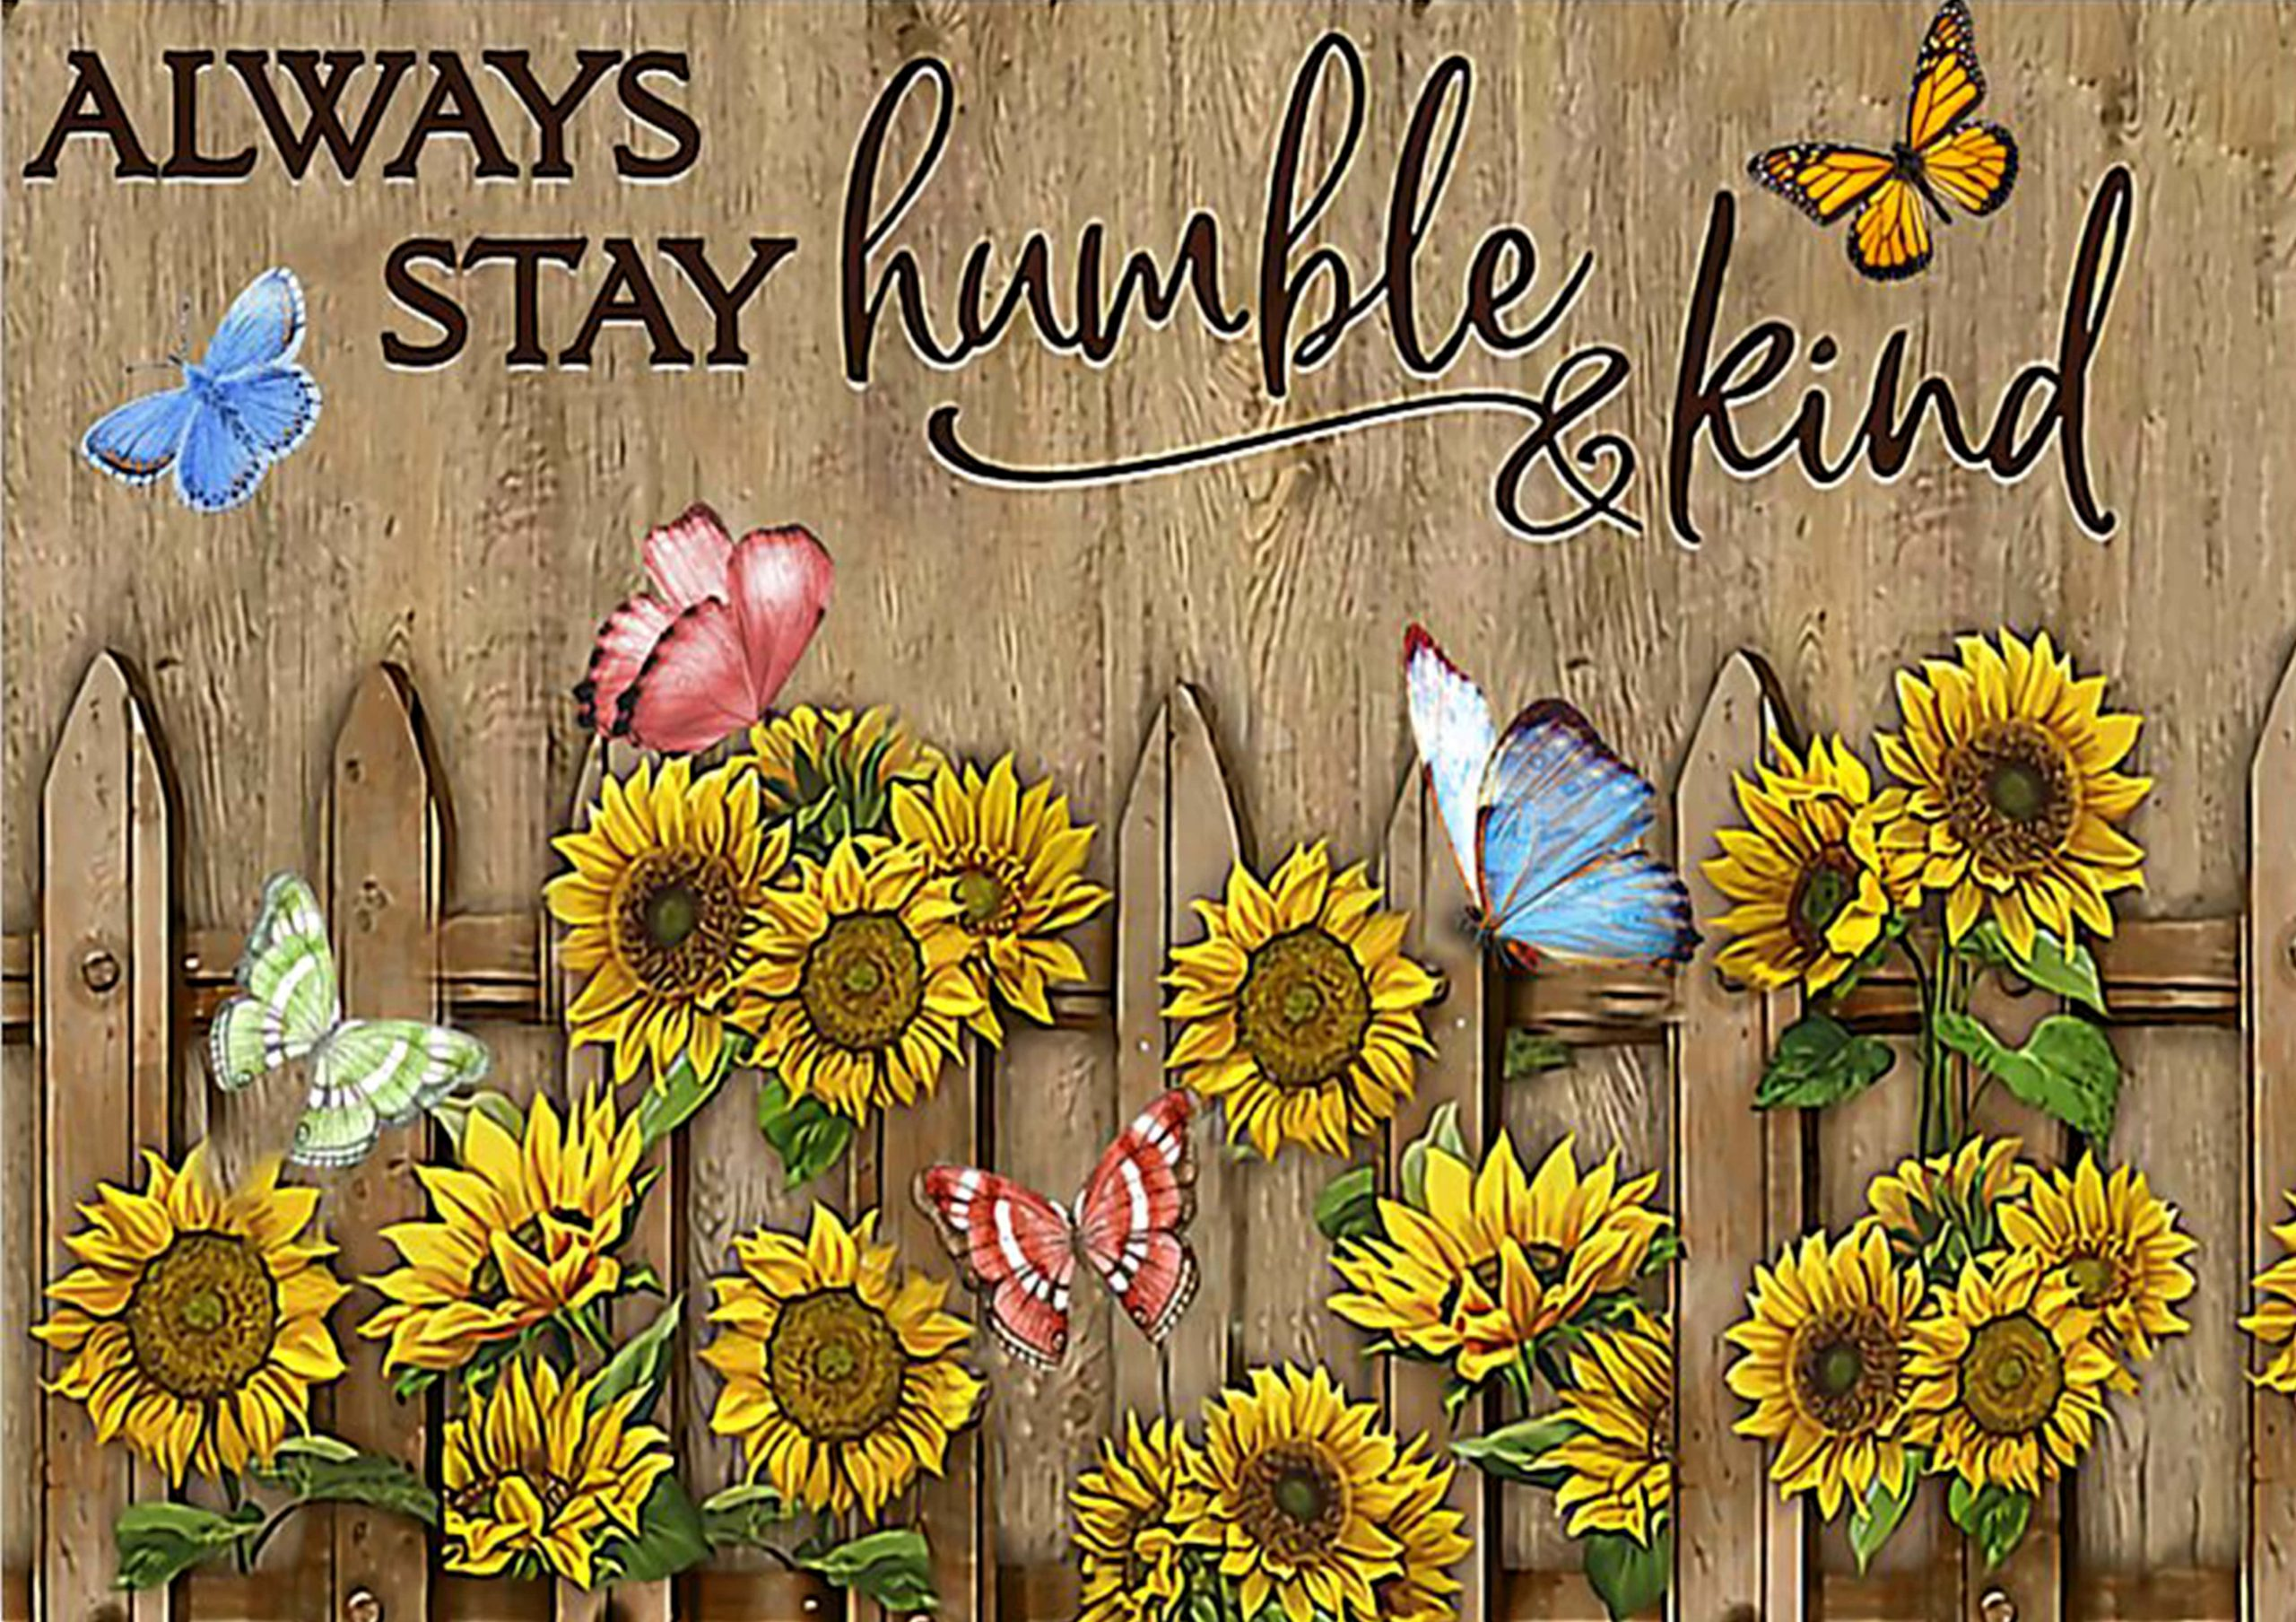 always stay humble and kind butterfly and sunflower poster 1 - Copy (3)